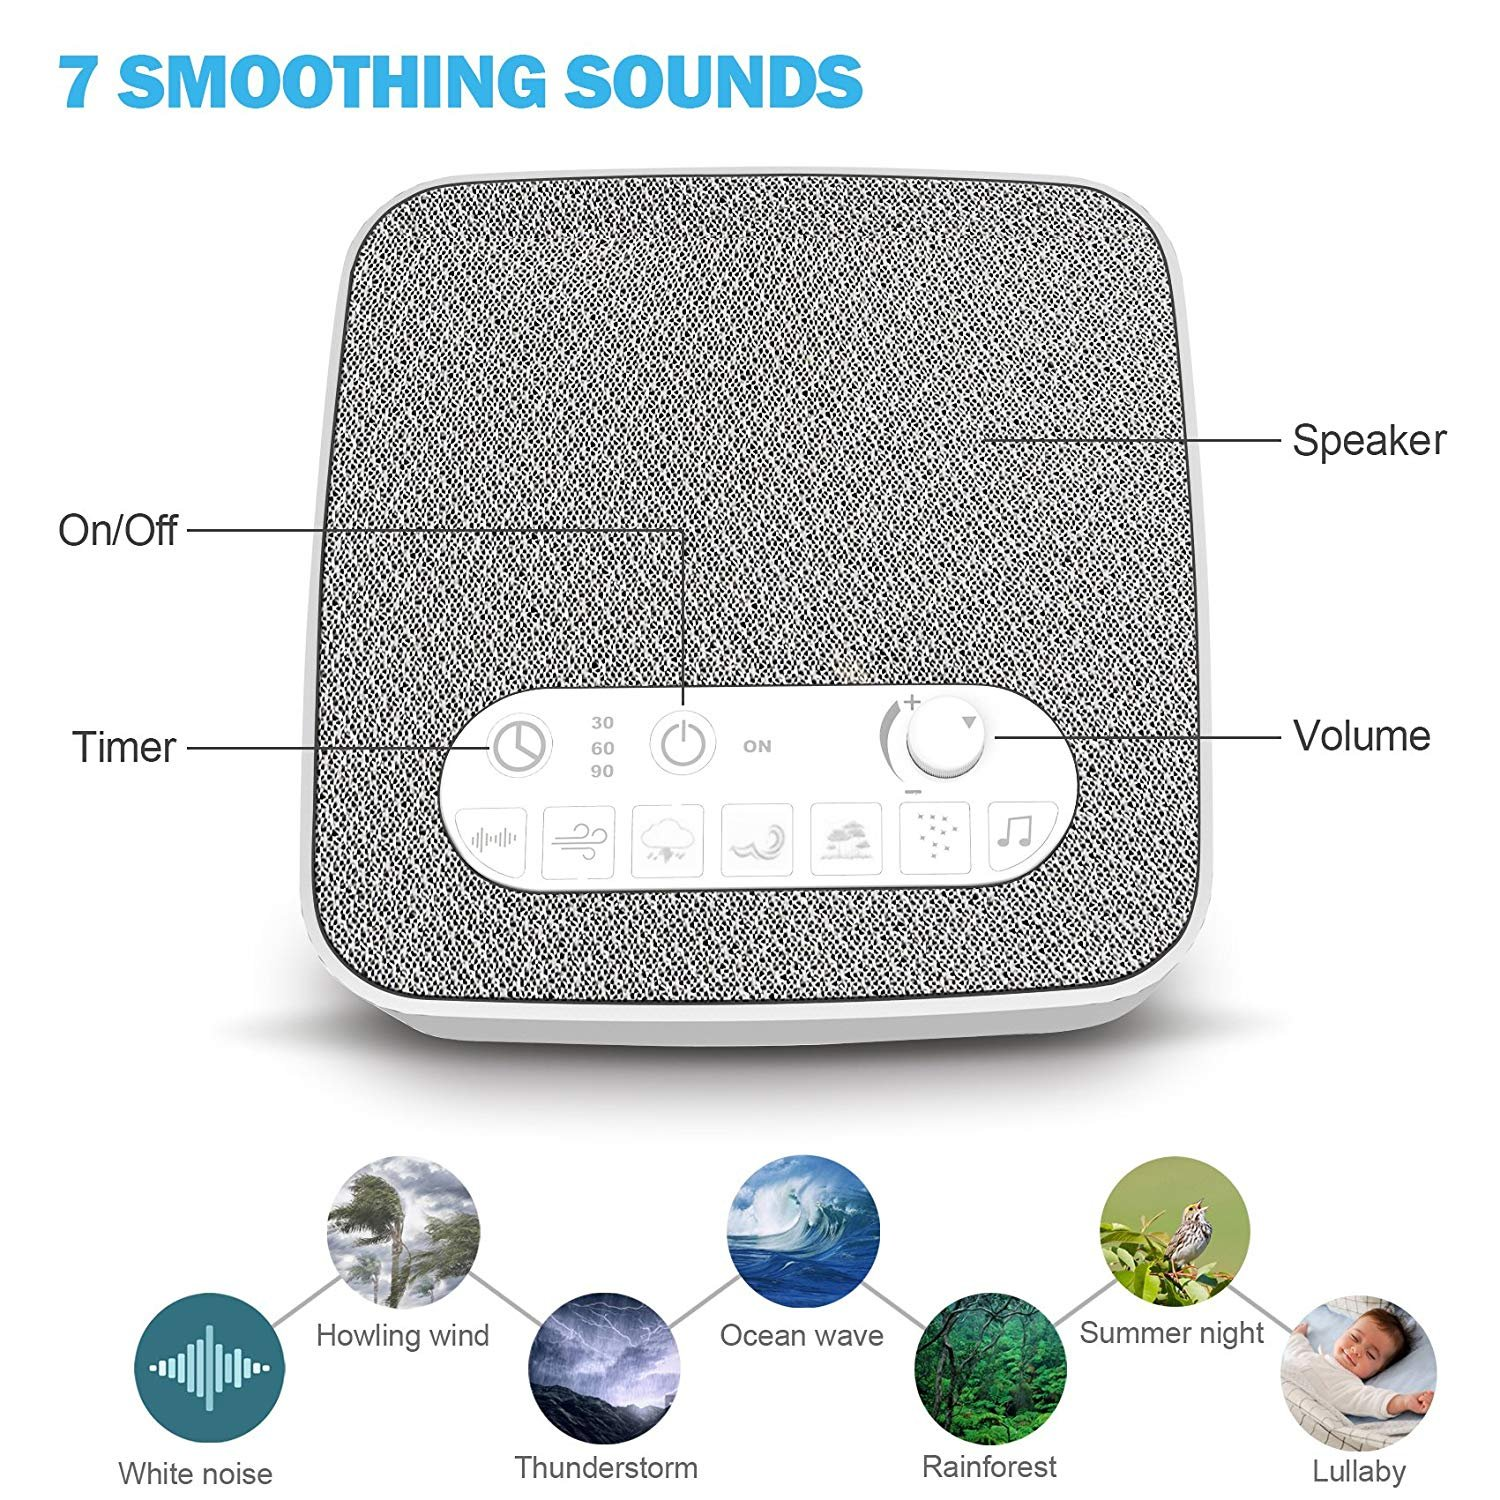 White Noise Machine for Sleeping, BESTHING Sleep Sound Machine with Non-Looping Soothing Sounds for Baby Adult Traveler, Portable for Home Office Travel. Built in USB Output Charger & Timer. by BESTHING (Image #2)